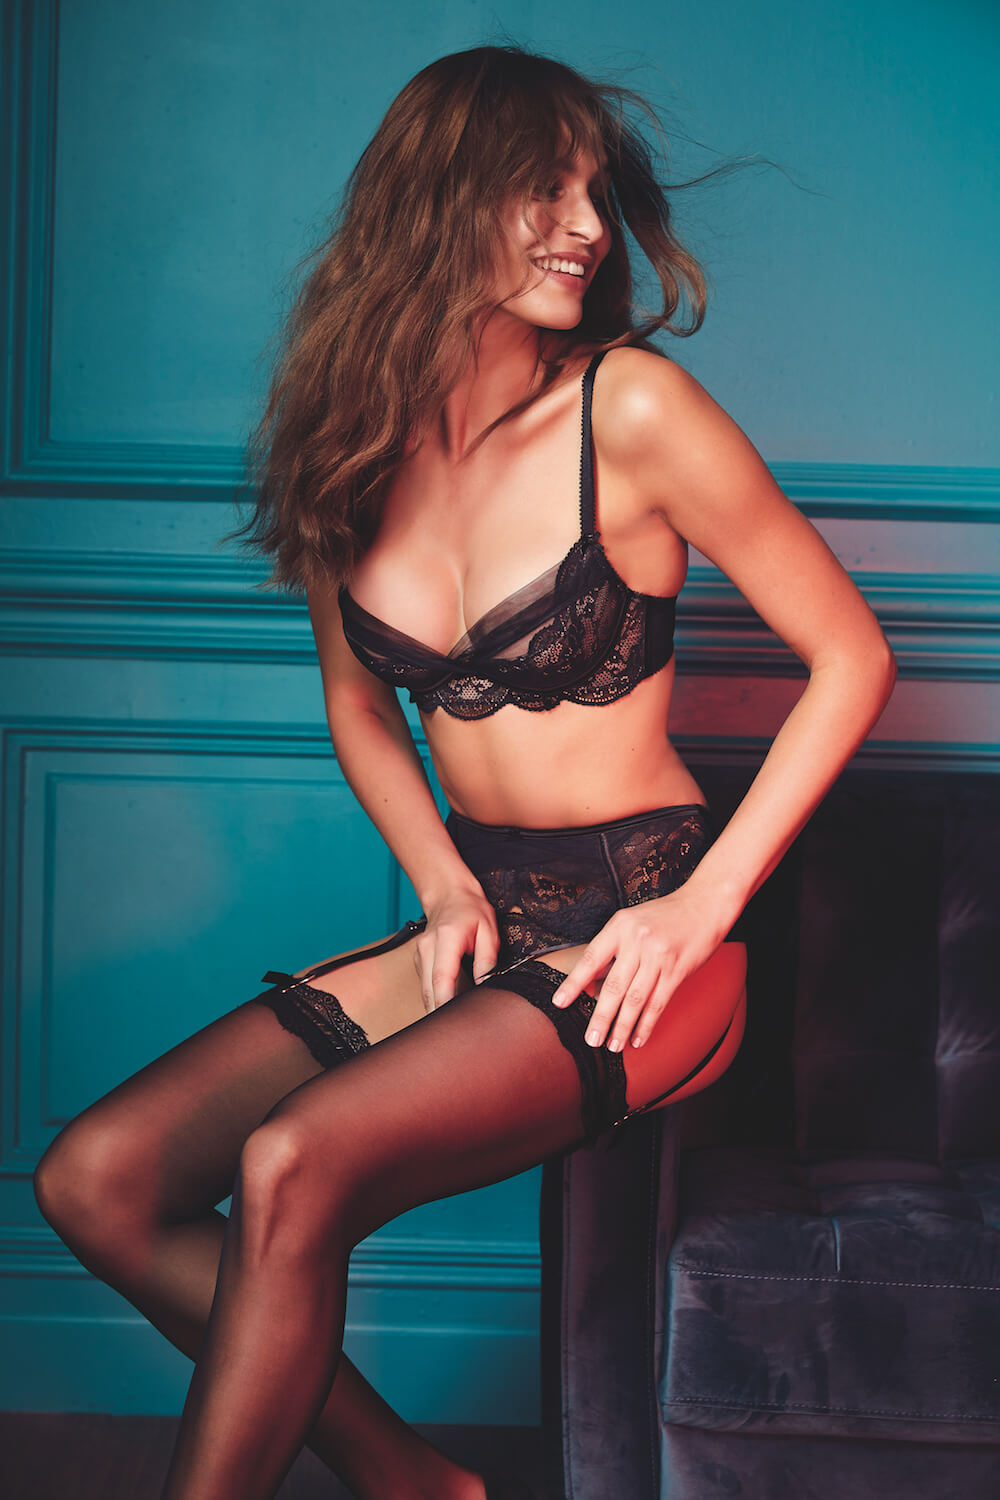 ce376394d7 The Valencia Tallulah full cup is the perfect combination of comfort and  style